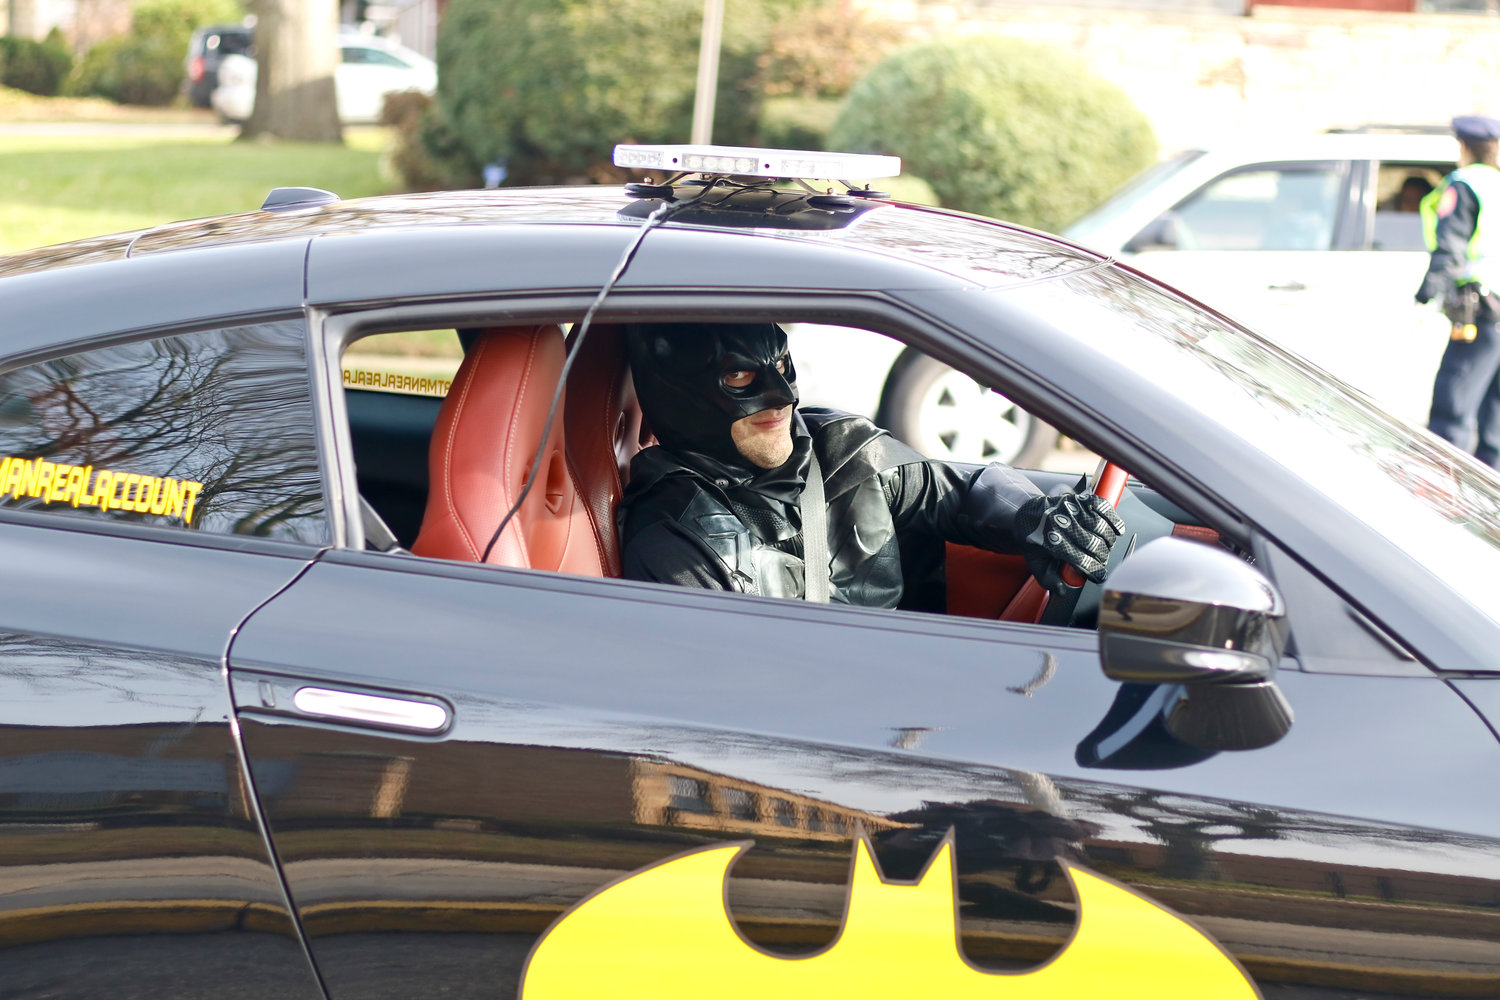 It wasn't a red sleigh but the Bat Mobile also helped deliver toys to the kids at Freeport High School during the Toys of Hope event.